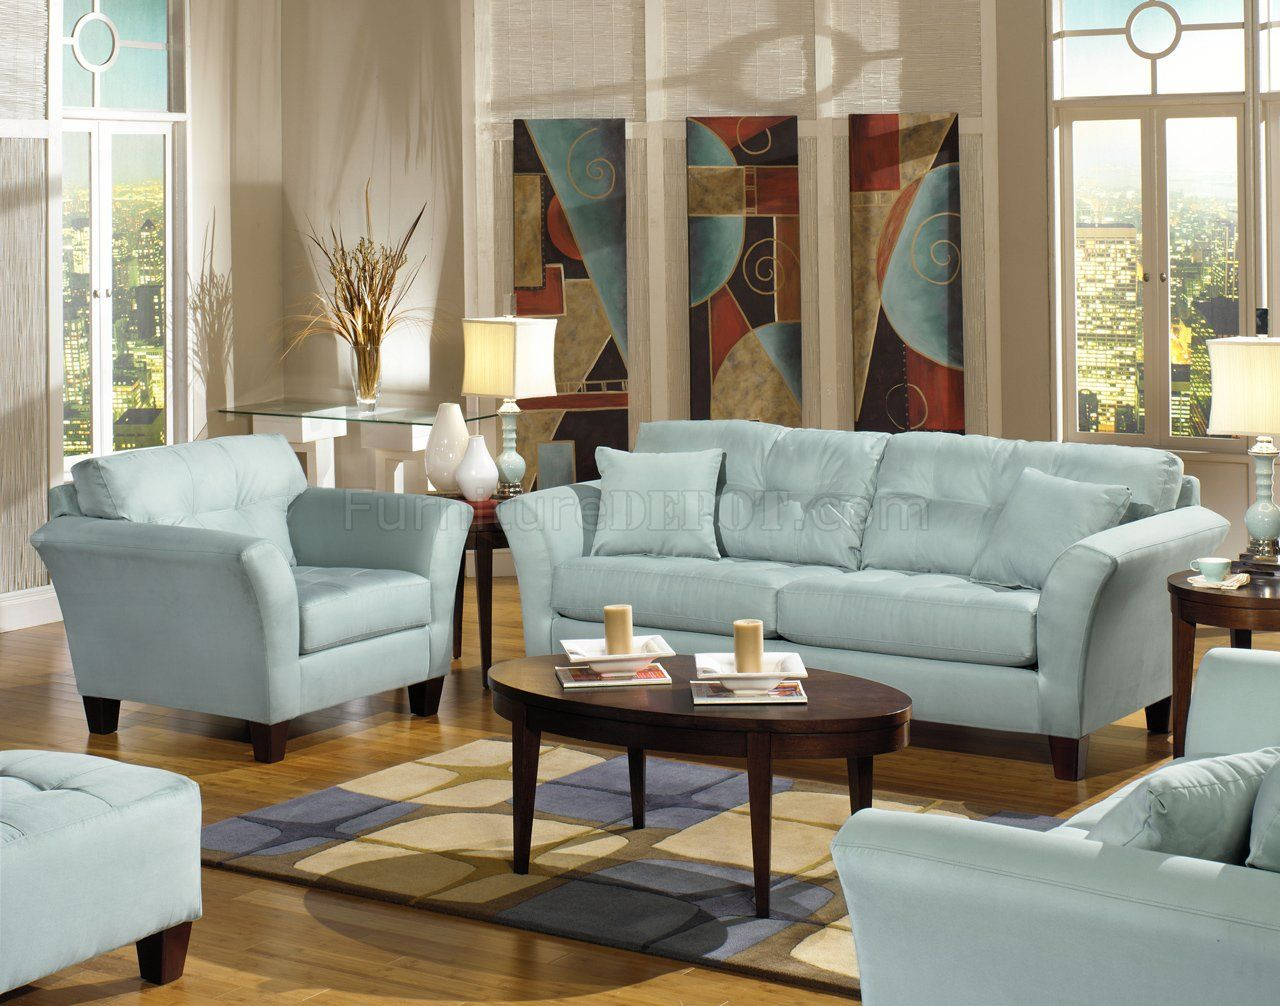 Elegant Powder Blue Leather Sofa Beautiful Powder Blue Leather Sofa 31 In Moder Light Blue Sofa Living Room Light Blue Living Room Blue Furniture Living Room